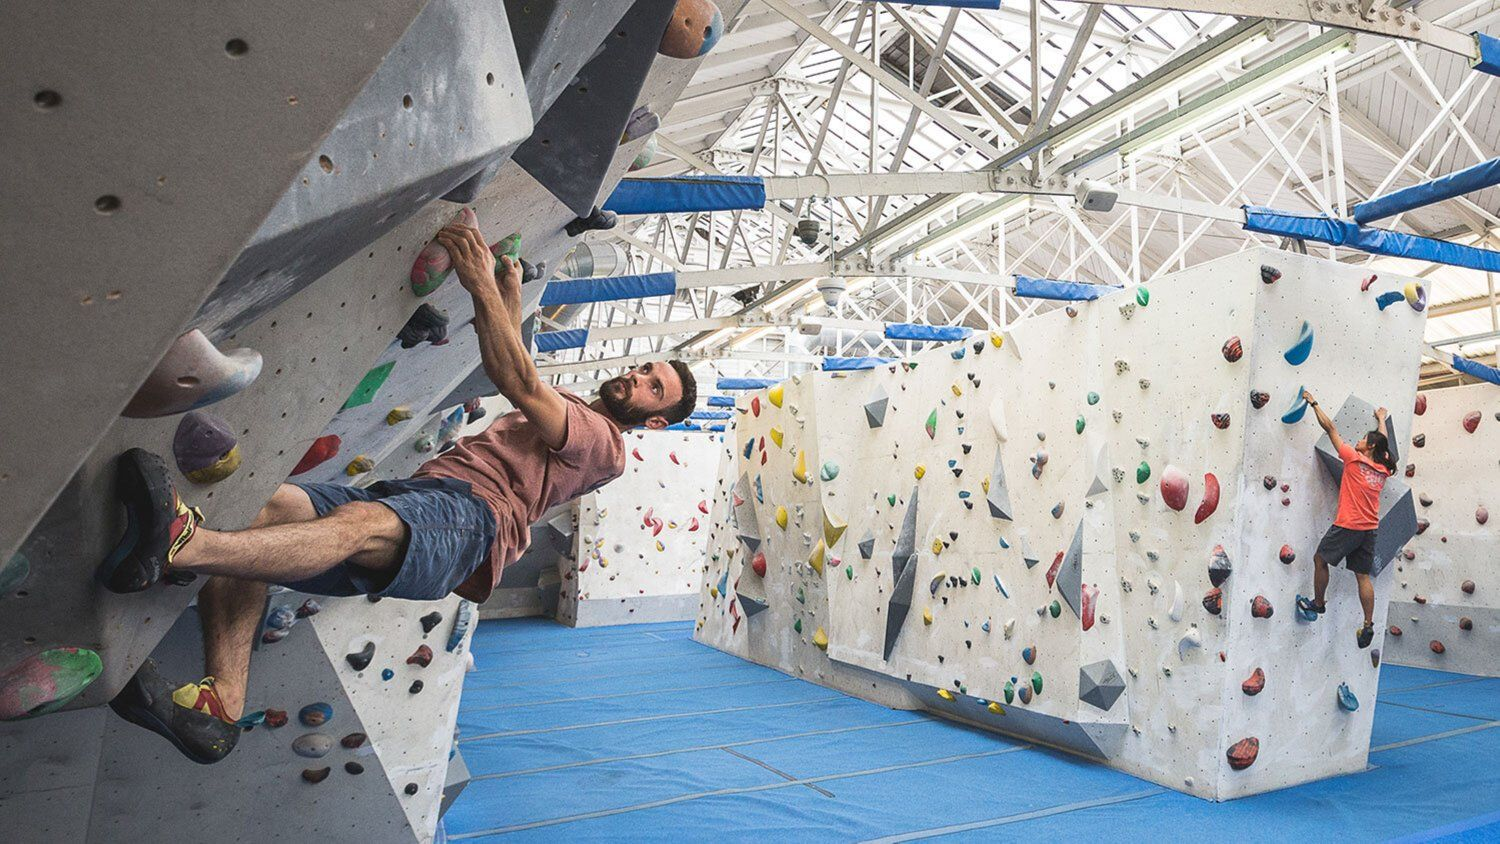 Bouldering at The Climbing Works